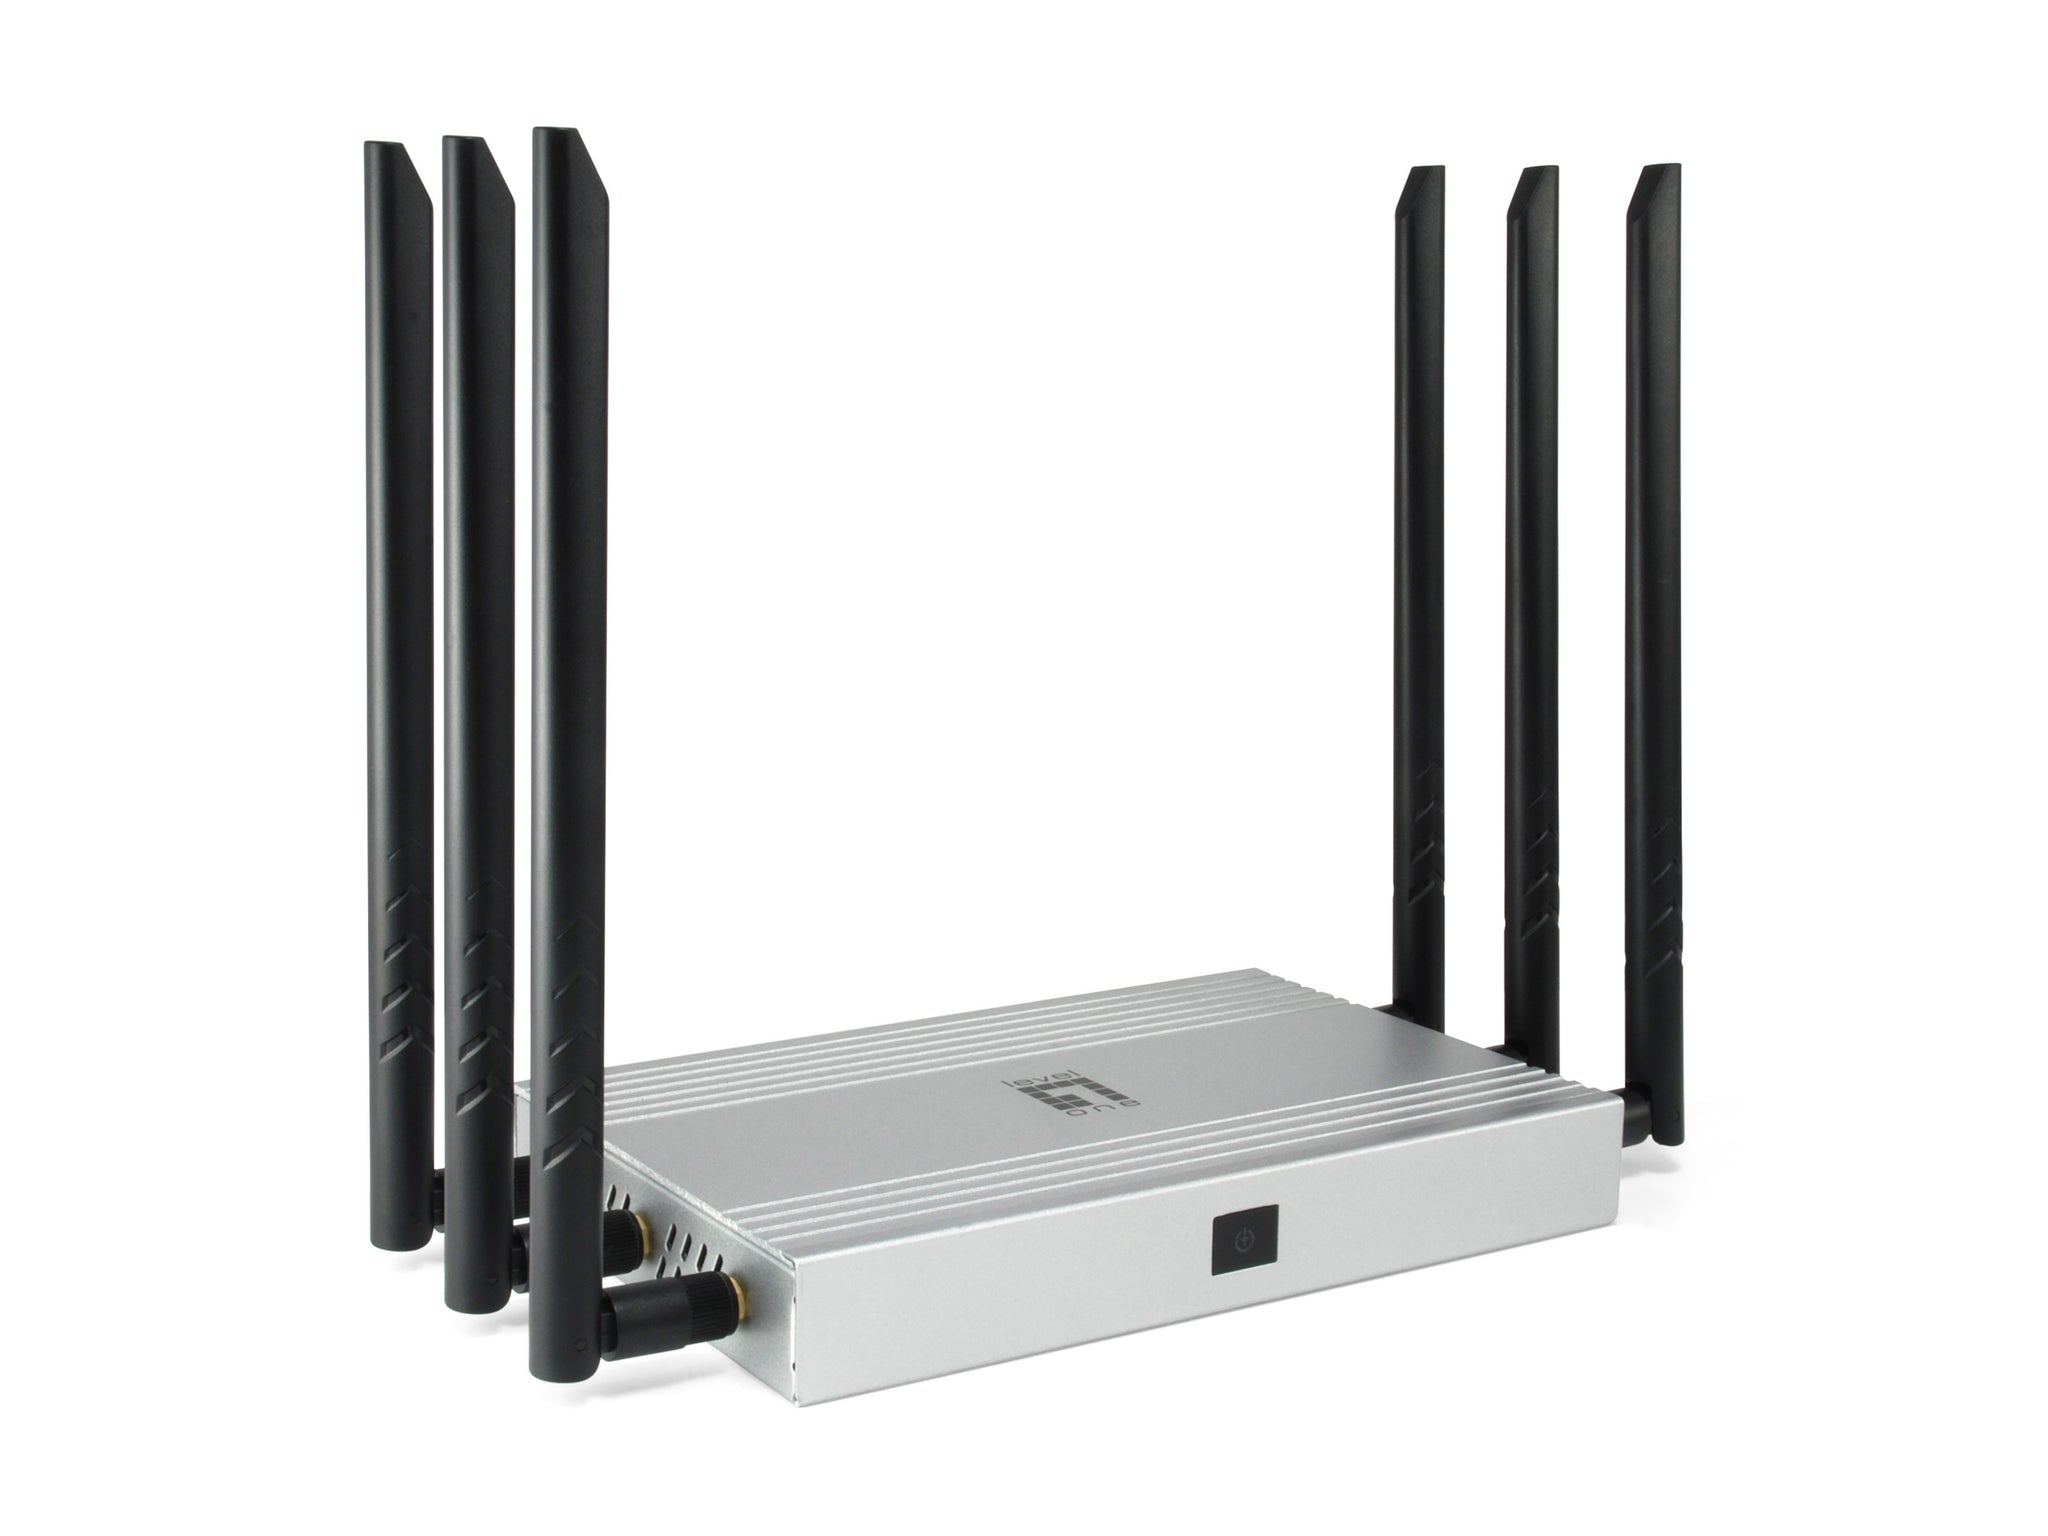 WAP-8021 AC1200 Dual Band Wireless Access Point, Desktop, Controller Managed